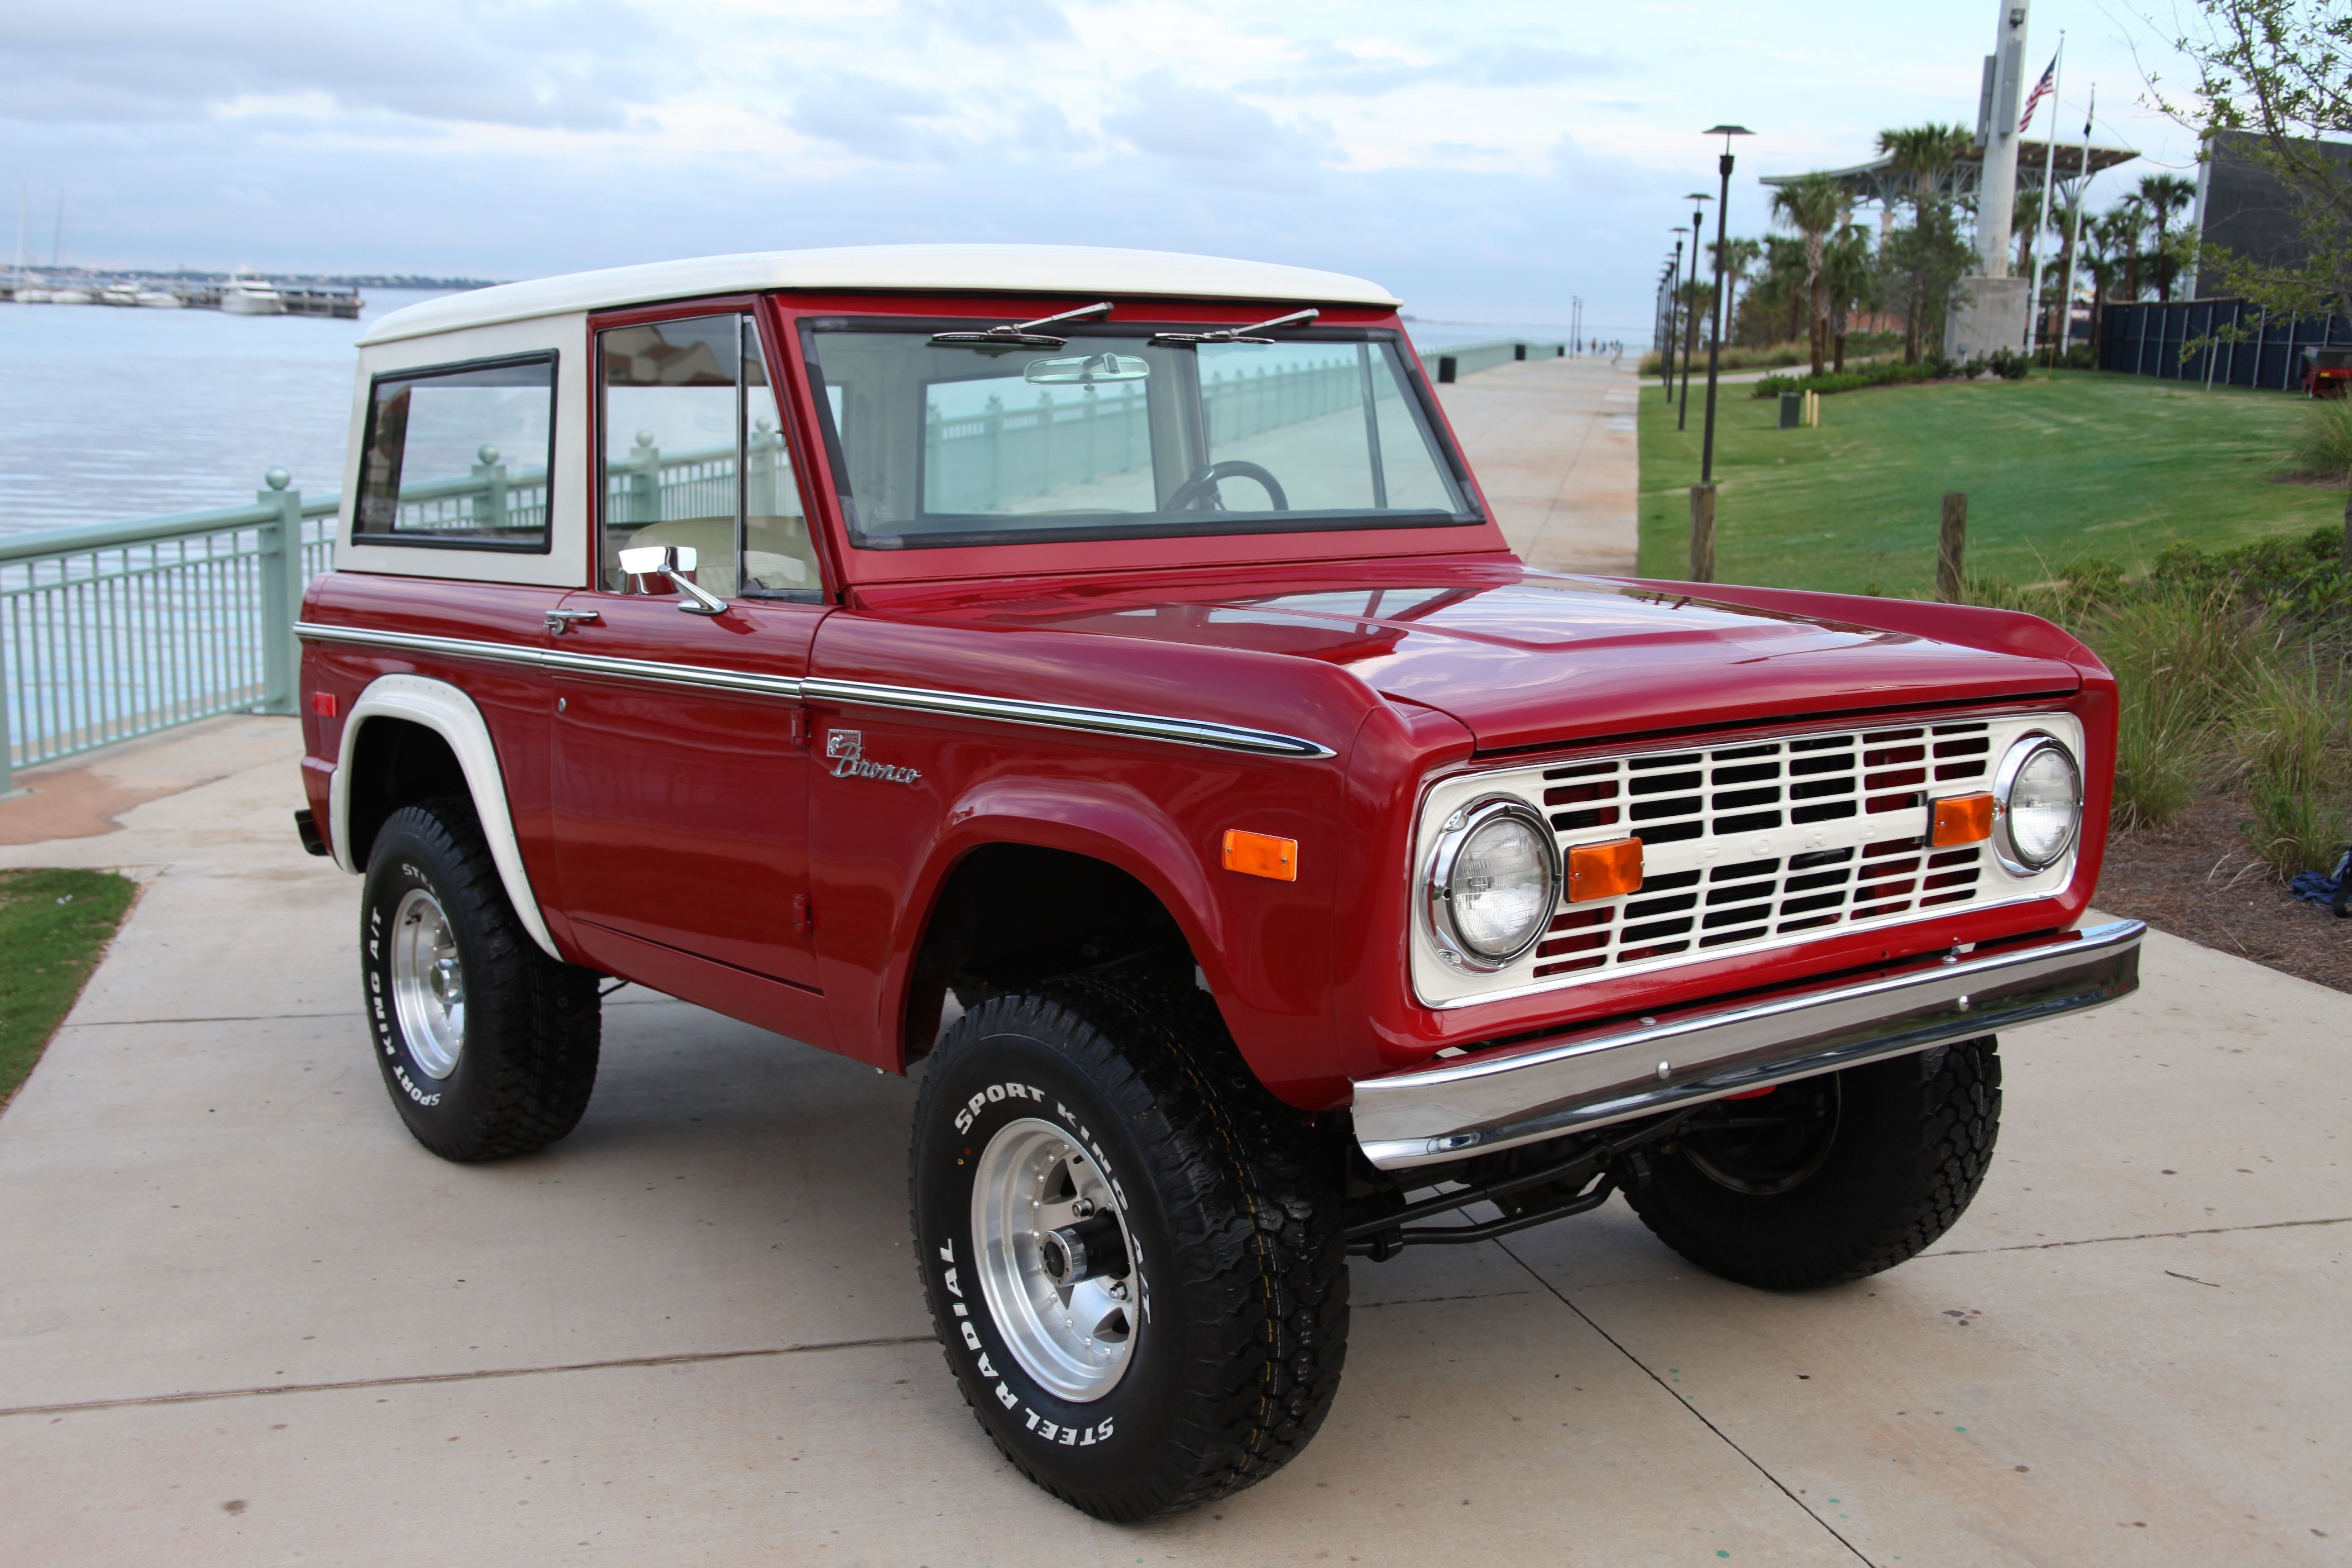 Early Ford Bronco Restored 1974 Frame Off Built 302 Velocity